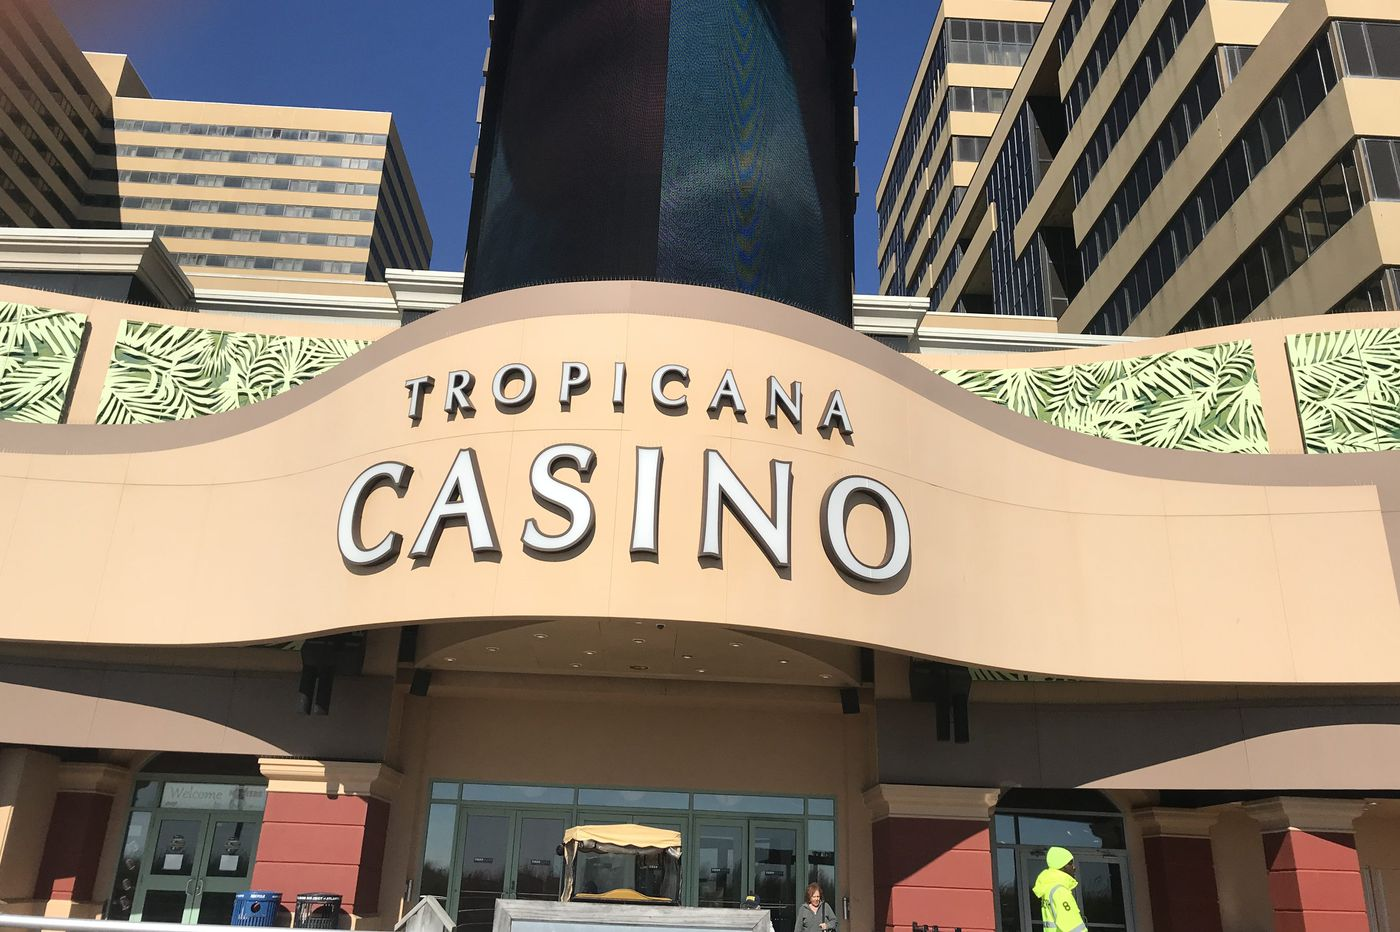 Tropicana sportsbook in Atlantic City opens with … a bet on the Lakers?